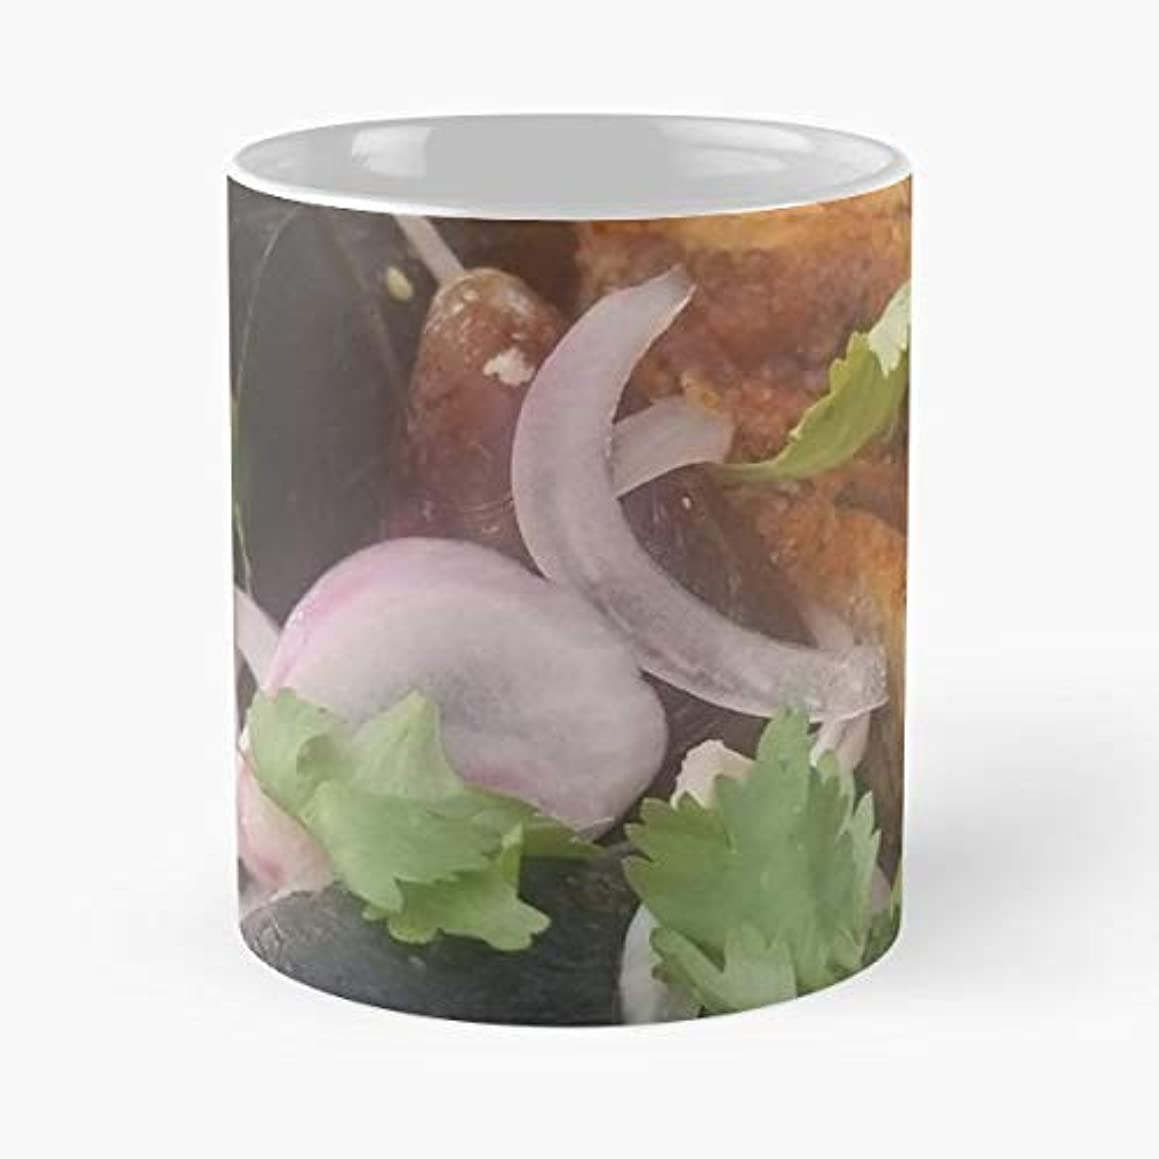 Jenjenn0710 Food Sushi Oishi -funny Present For My Greatest Boss Male Or Female, Men, Women, Great Office Gift Mugs, Birthday, Leaving, Bold, Cup, 11 Oz